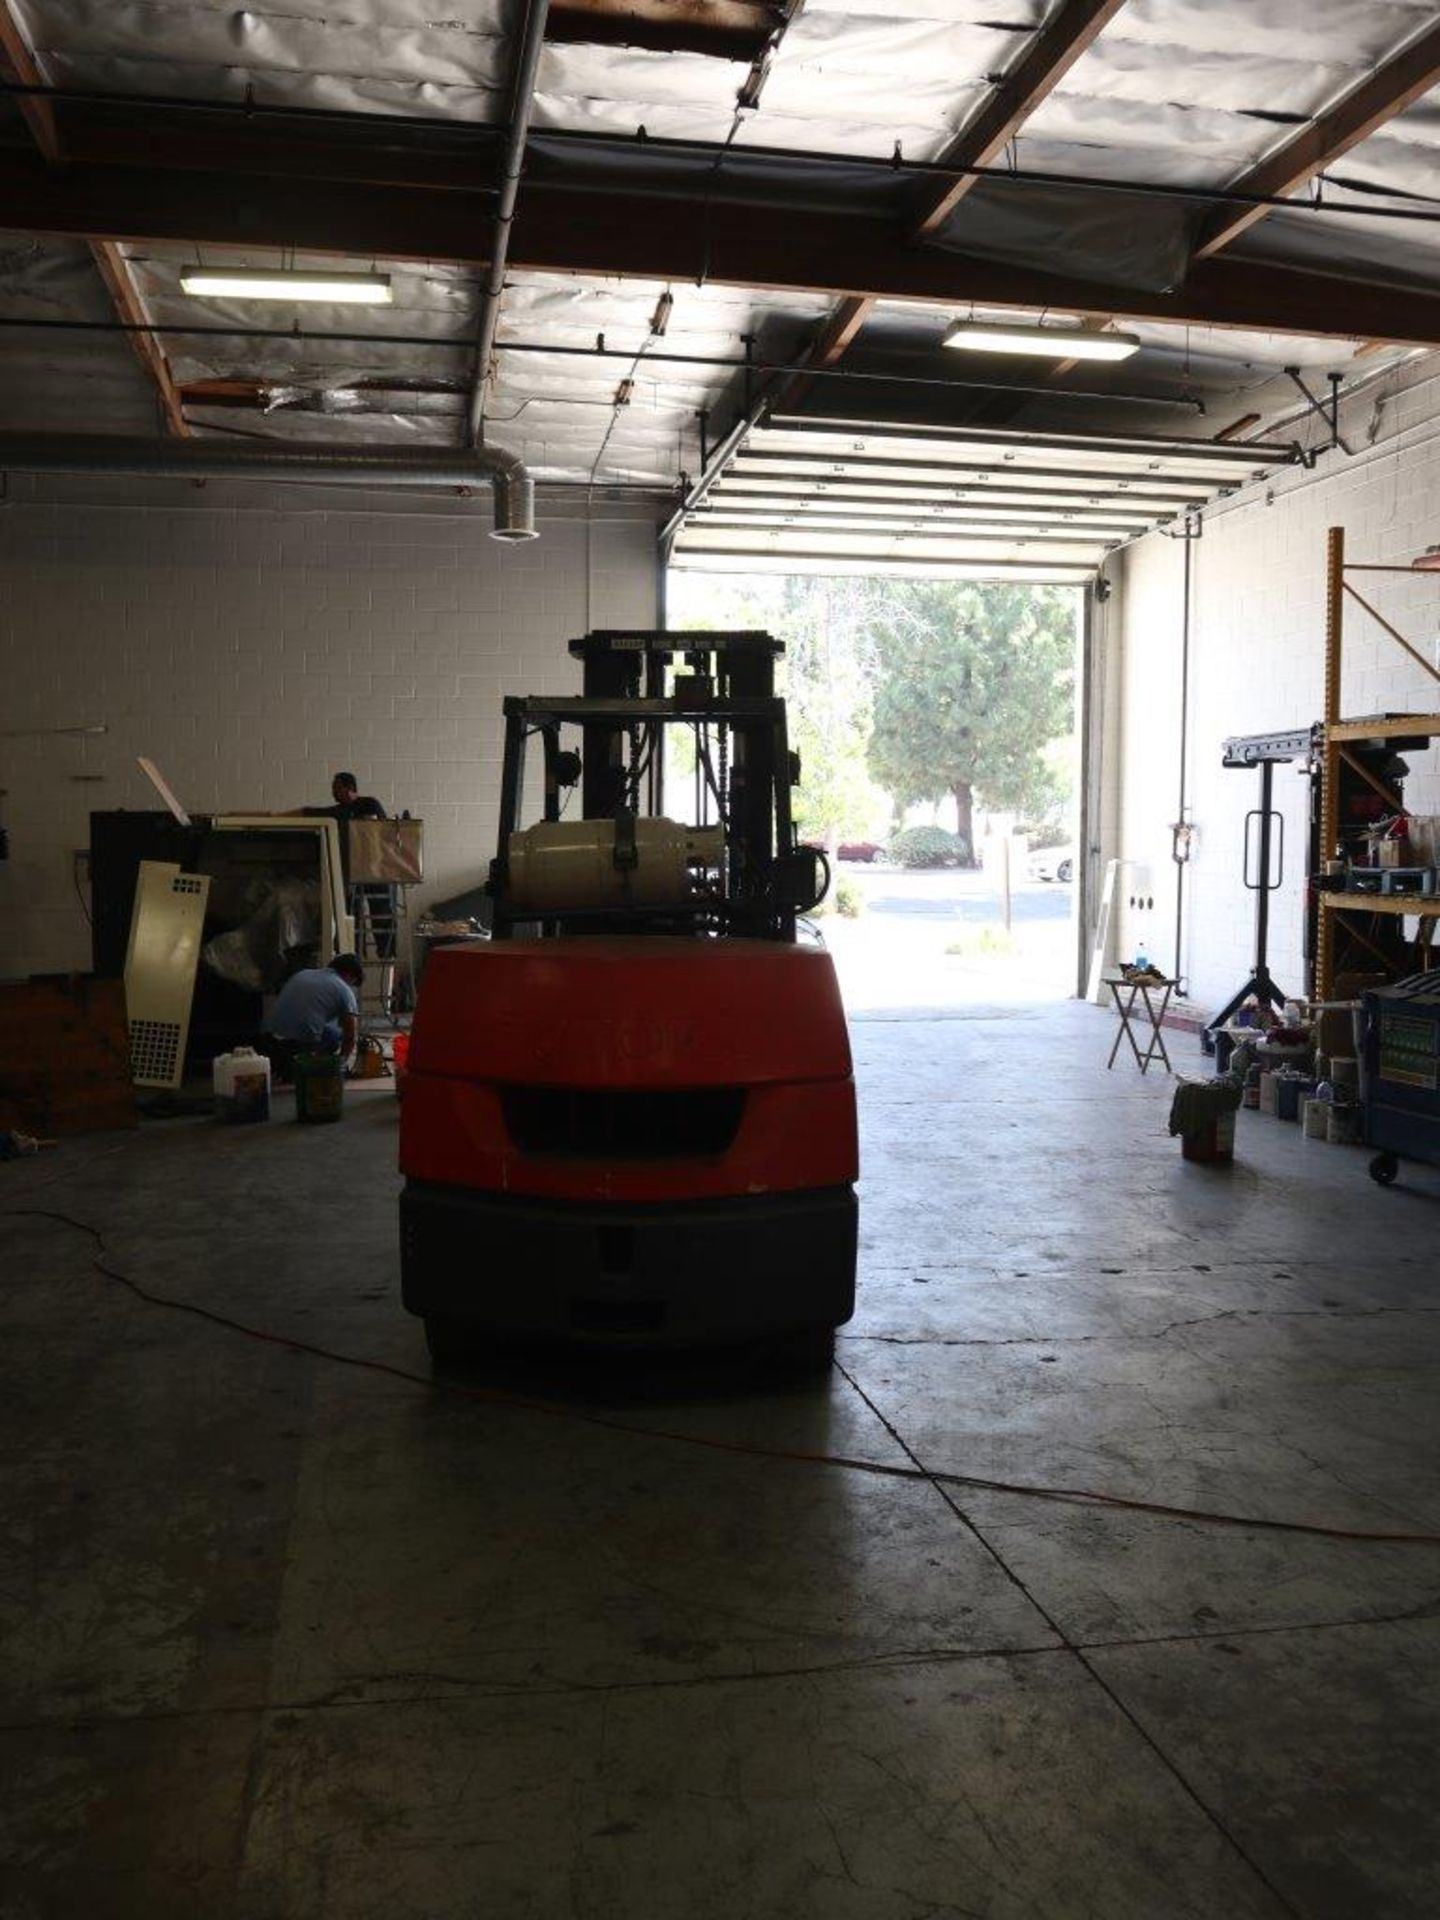 TOYOTA FORKLIFT 15,500 LBS LIFT CAPACITY 7FGCU70 - Image 5 of 8